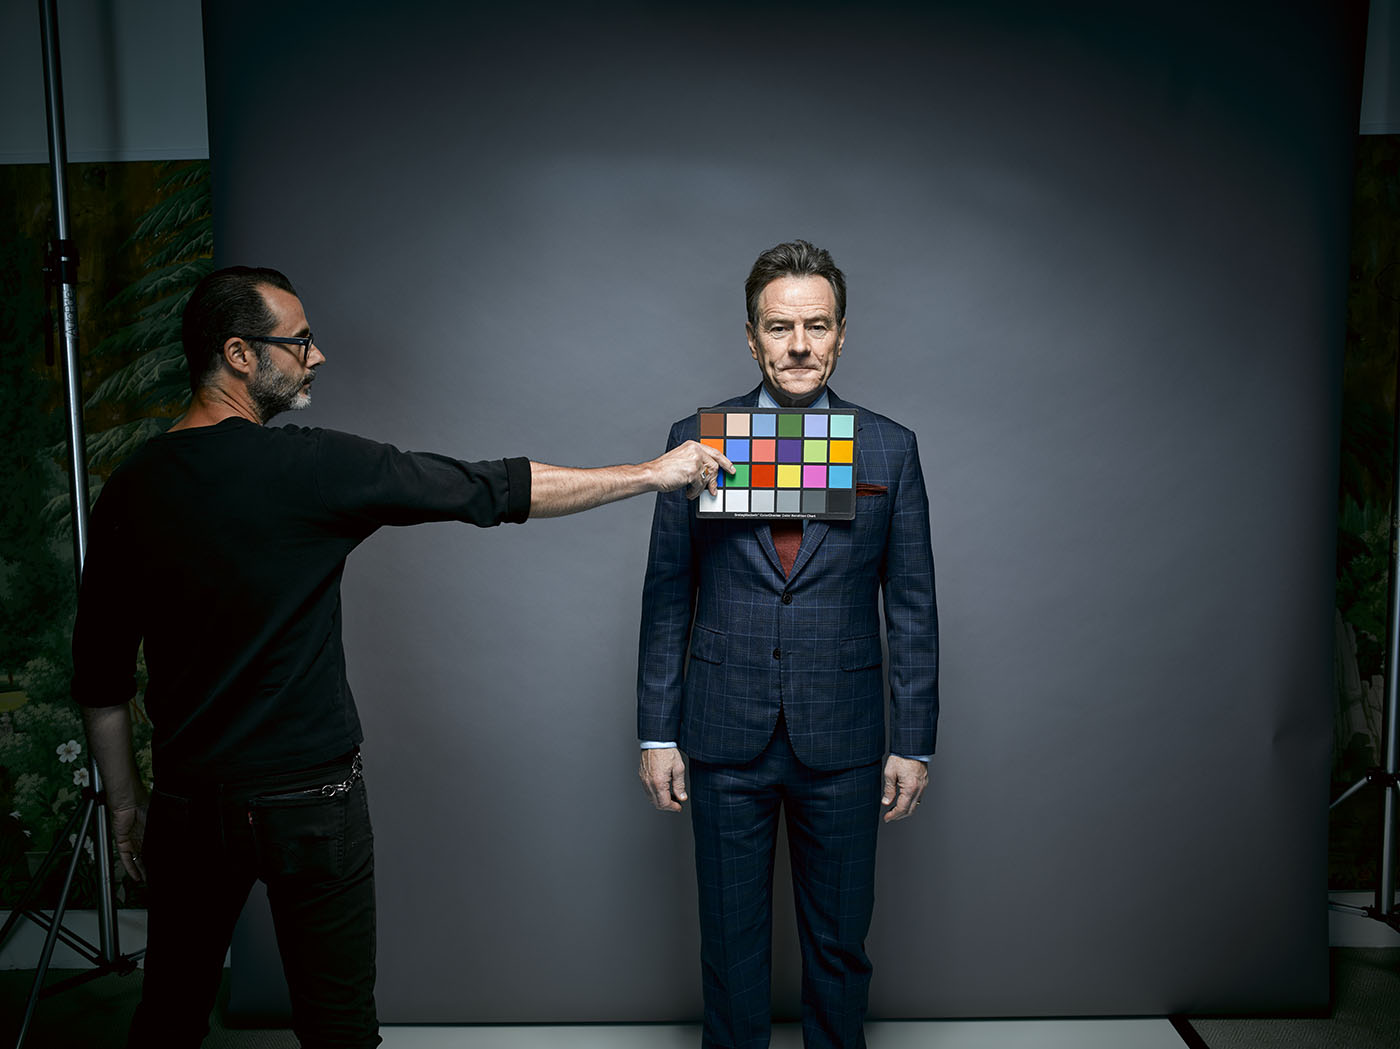 Behind-the-scenes snapshot of actor Bryan Cranston. Photo by Brad Trent at Damn Ugly Photography.